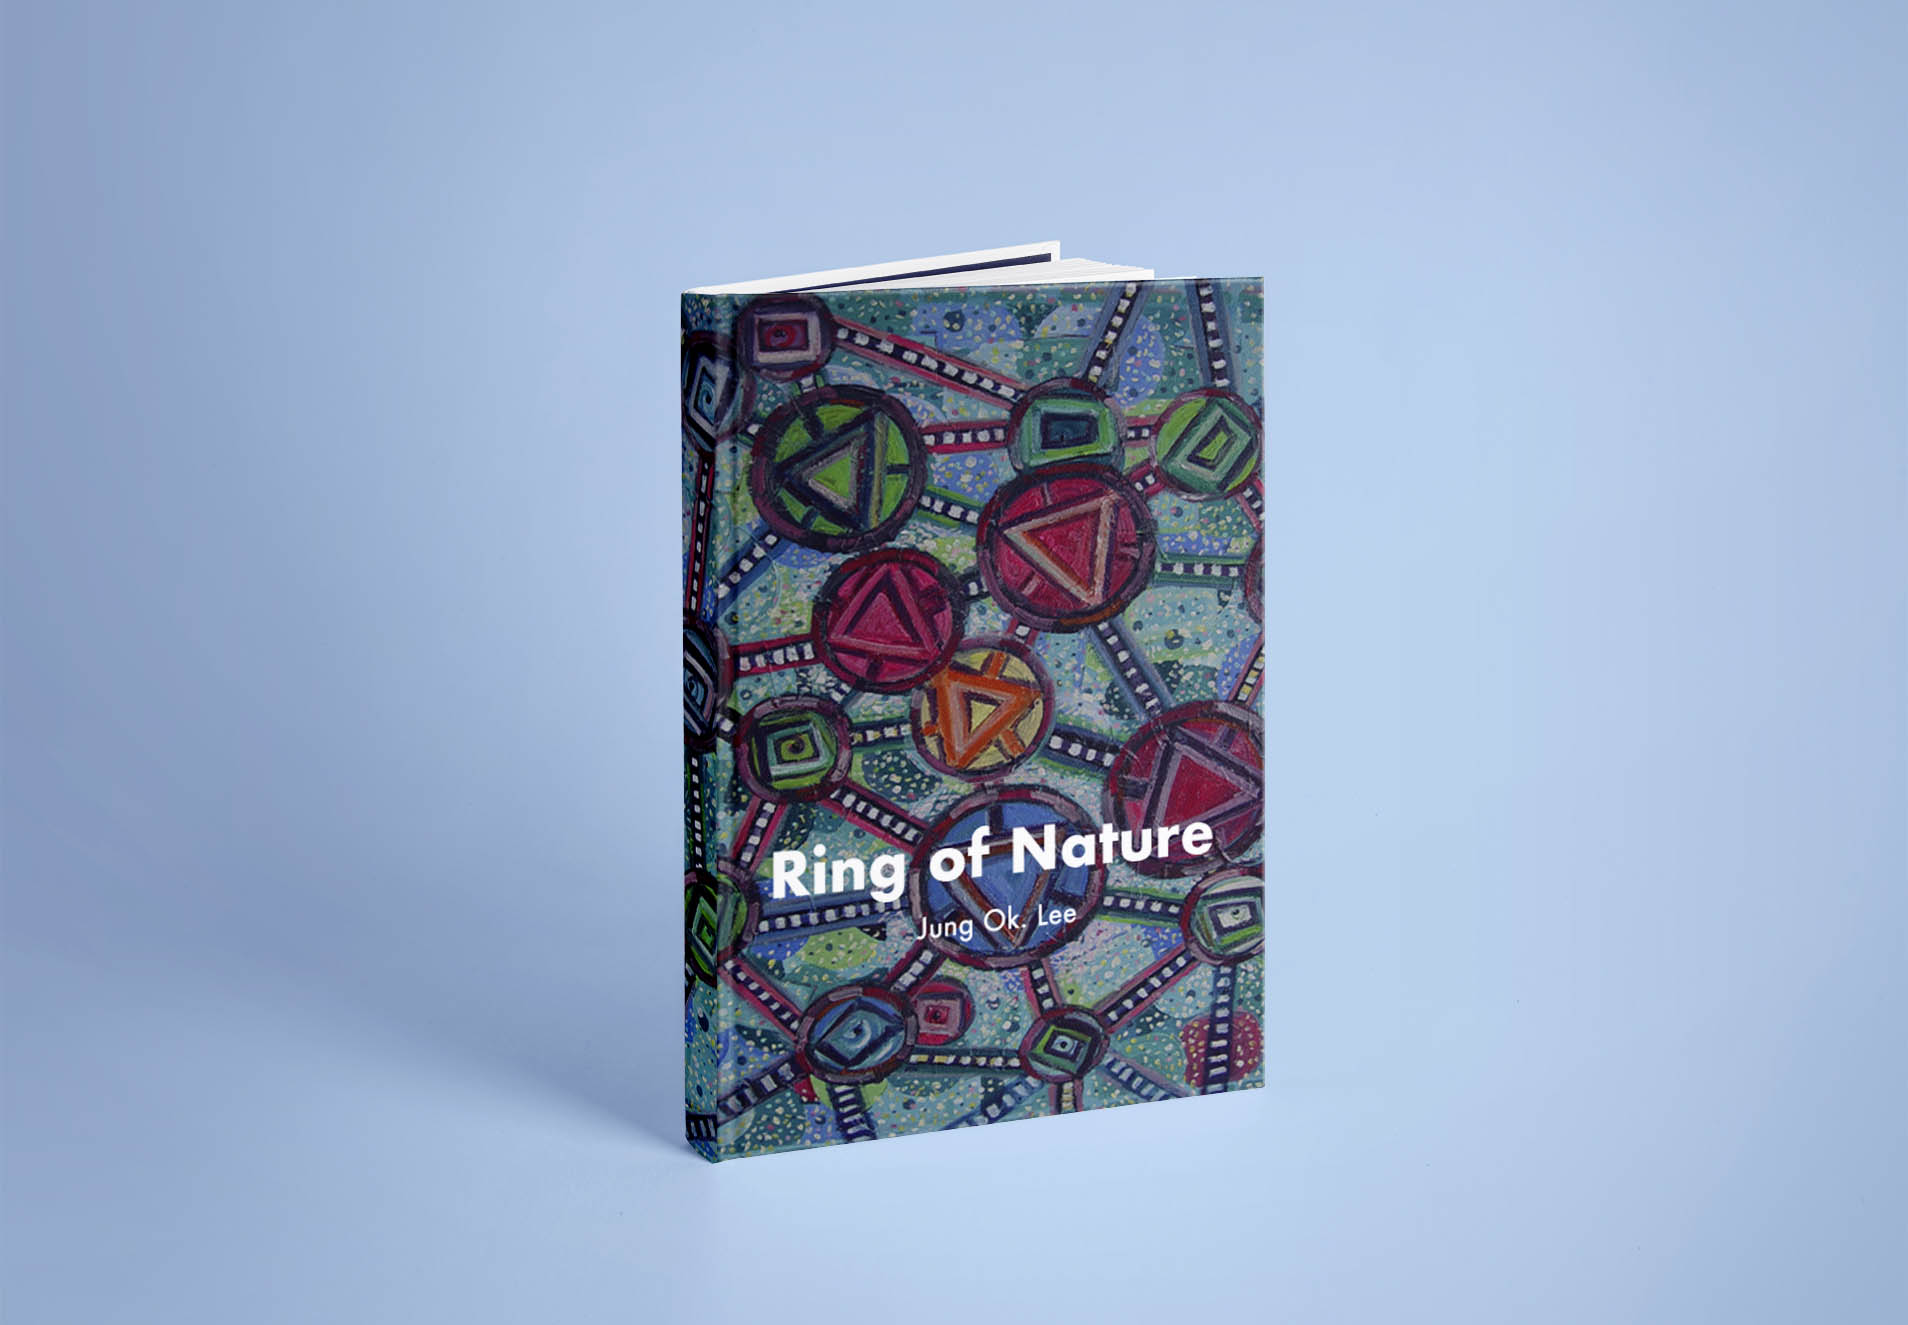 Jung Ok. Lee <Ring of Nature>